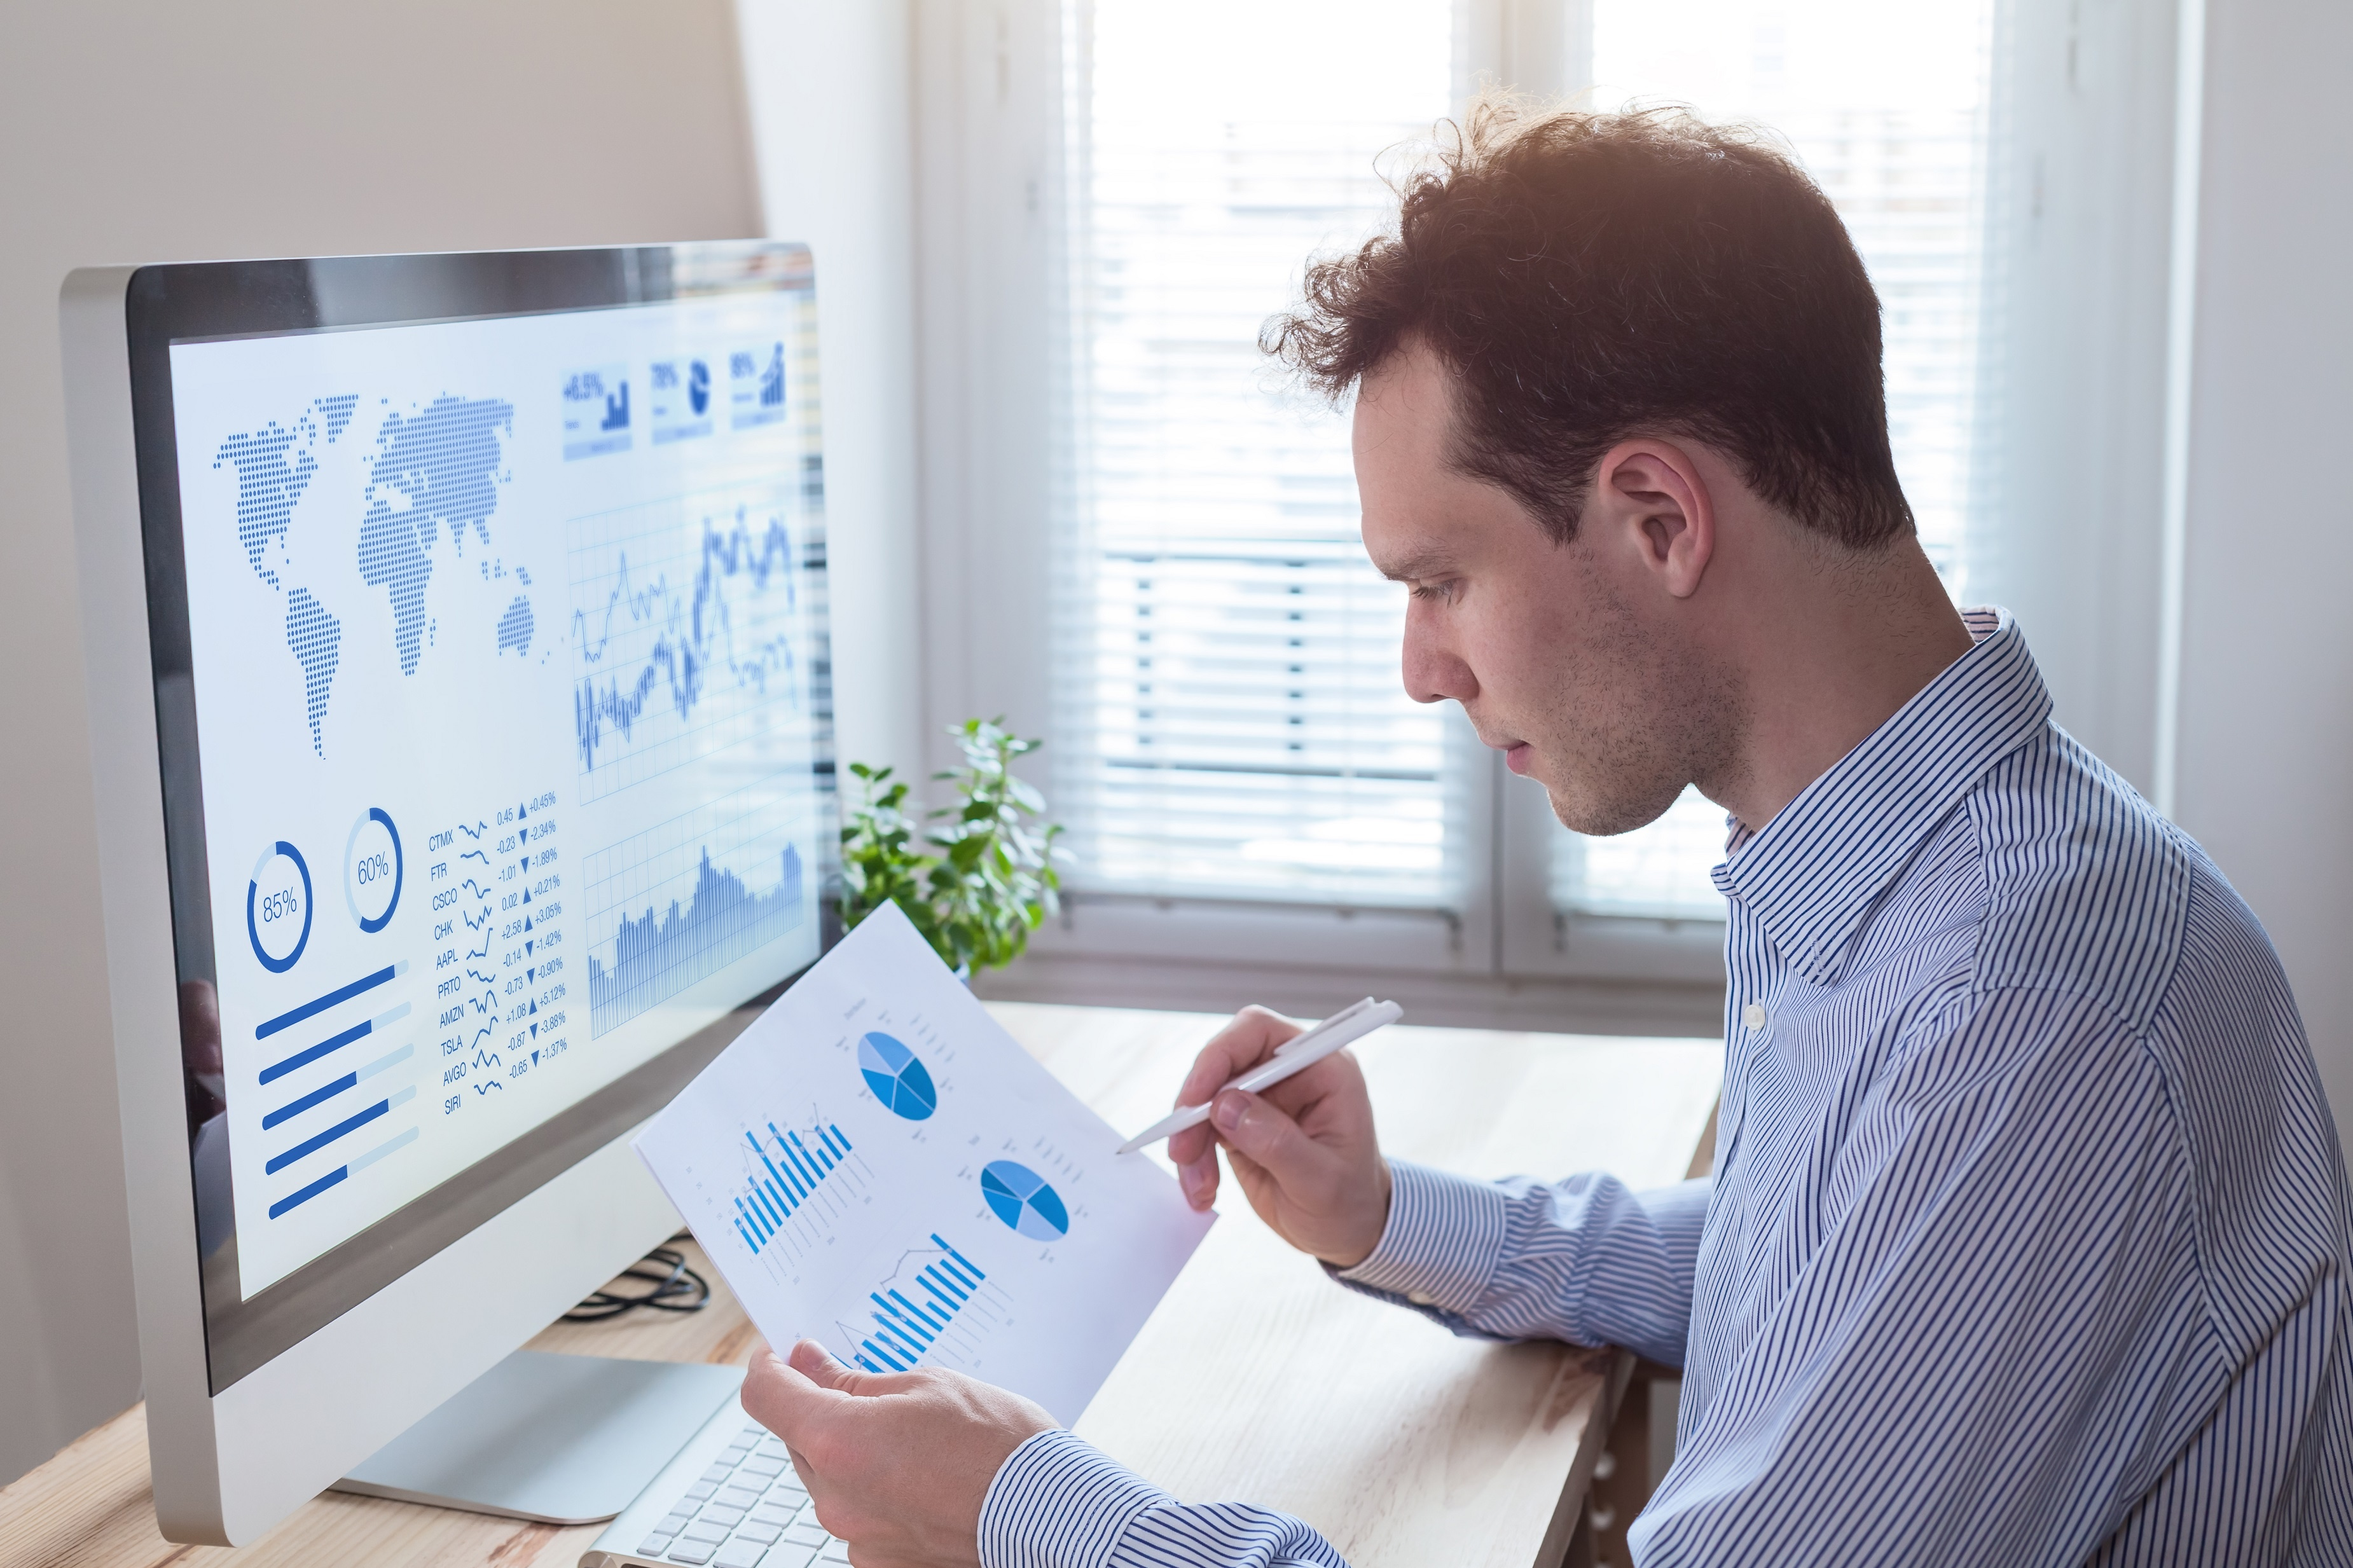 Big Data for small business: why crunching the numbers matters